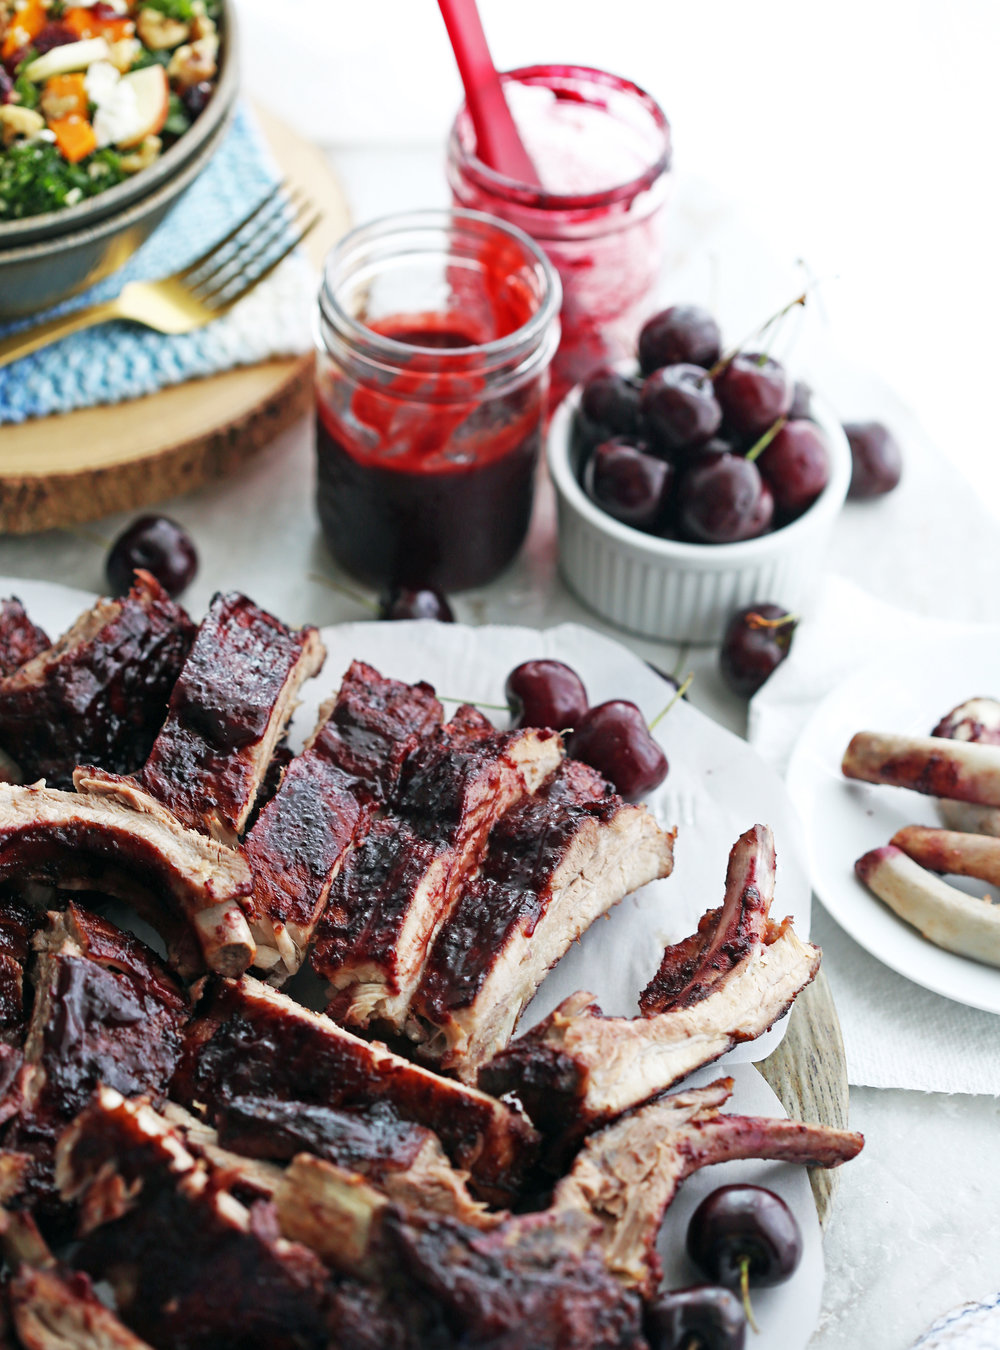 A platter of Baby Back Ribs covered with cherry chipotle sauce, a jar of sauce, and a bowl of fresh cherries on the side.